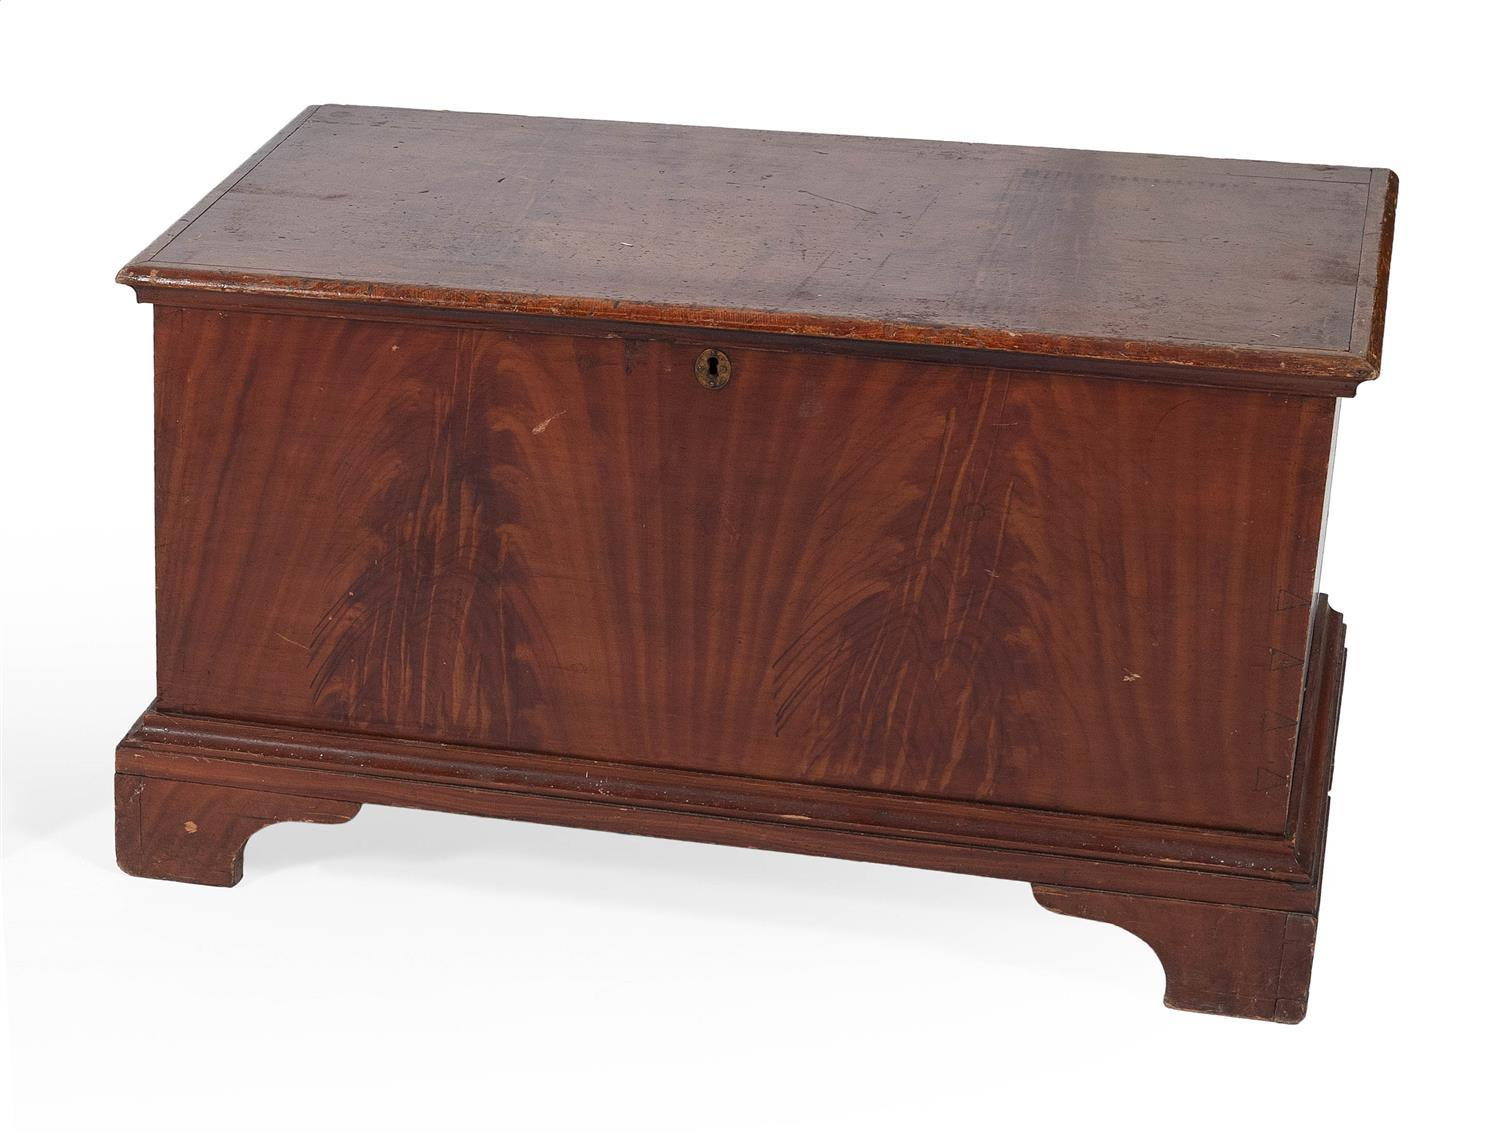 PENNSYLVANIA LIFT-TOP CHEST In pine, with red and brown grain-painted decoration. Shaped lid attached with iron hinges. Shaped brack...